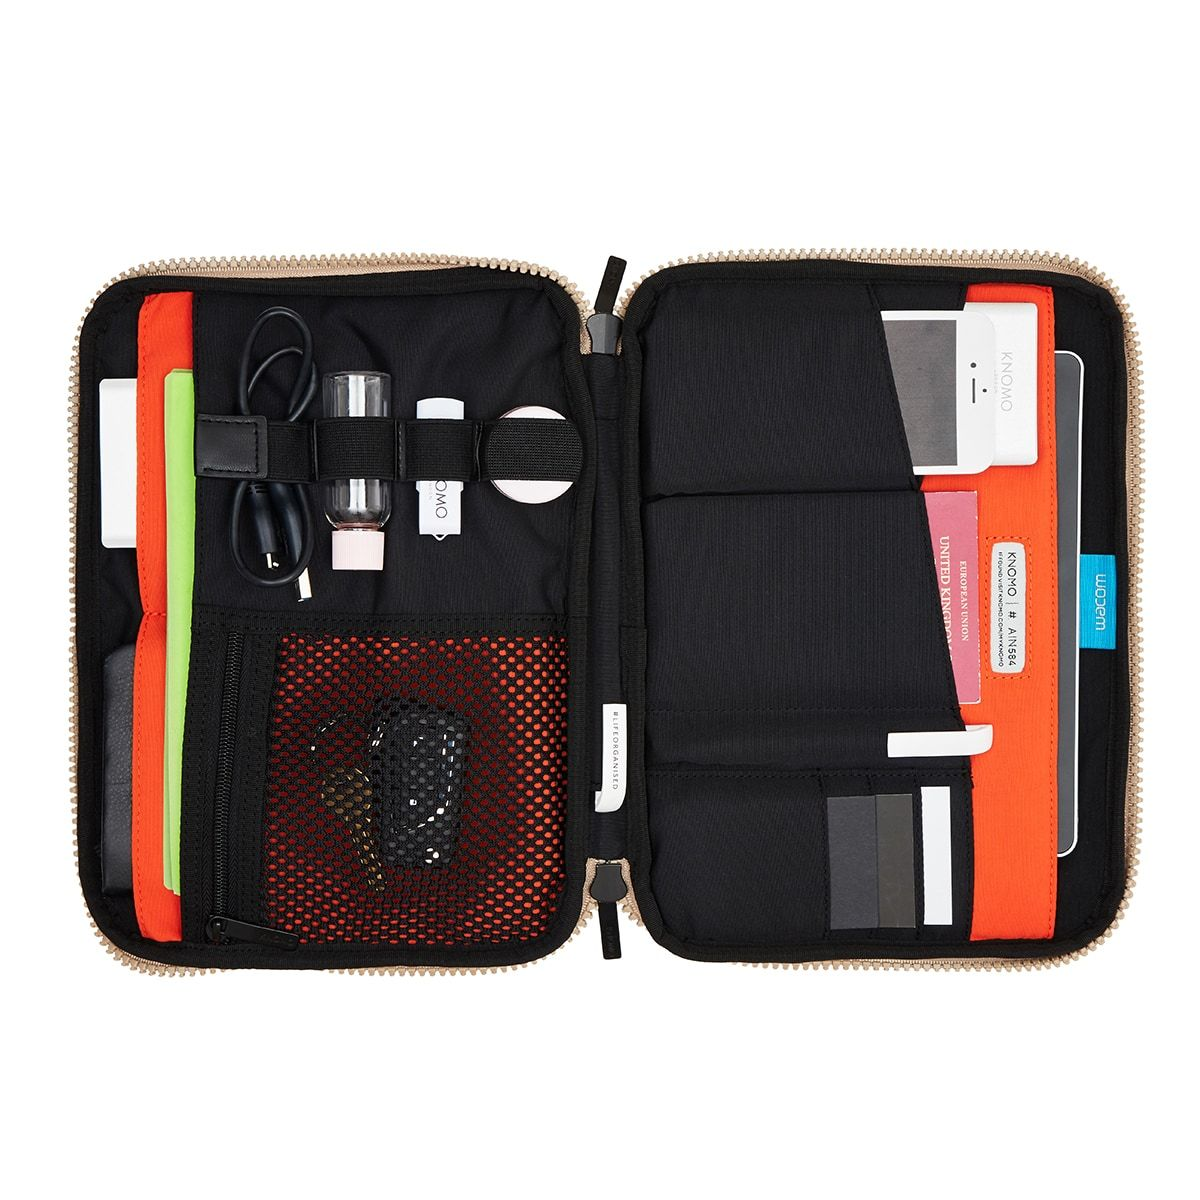 "KNOMO Thames Knomad Organiser Tech Organiser Internal With Items 10.5"" -  Desert 